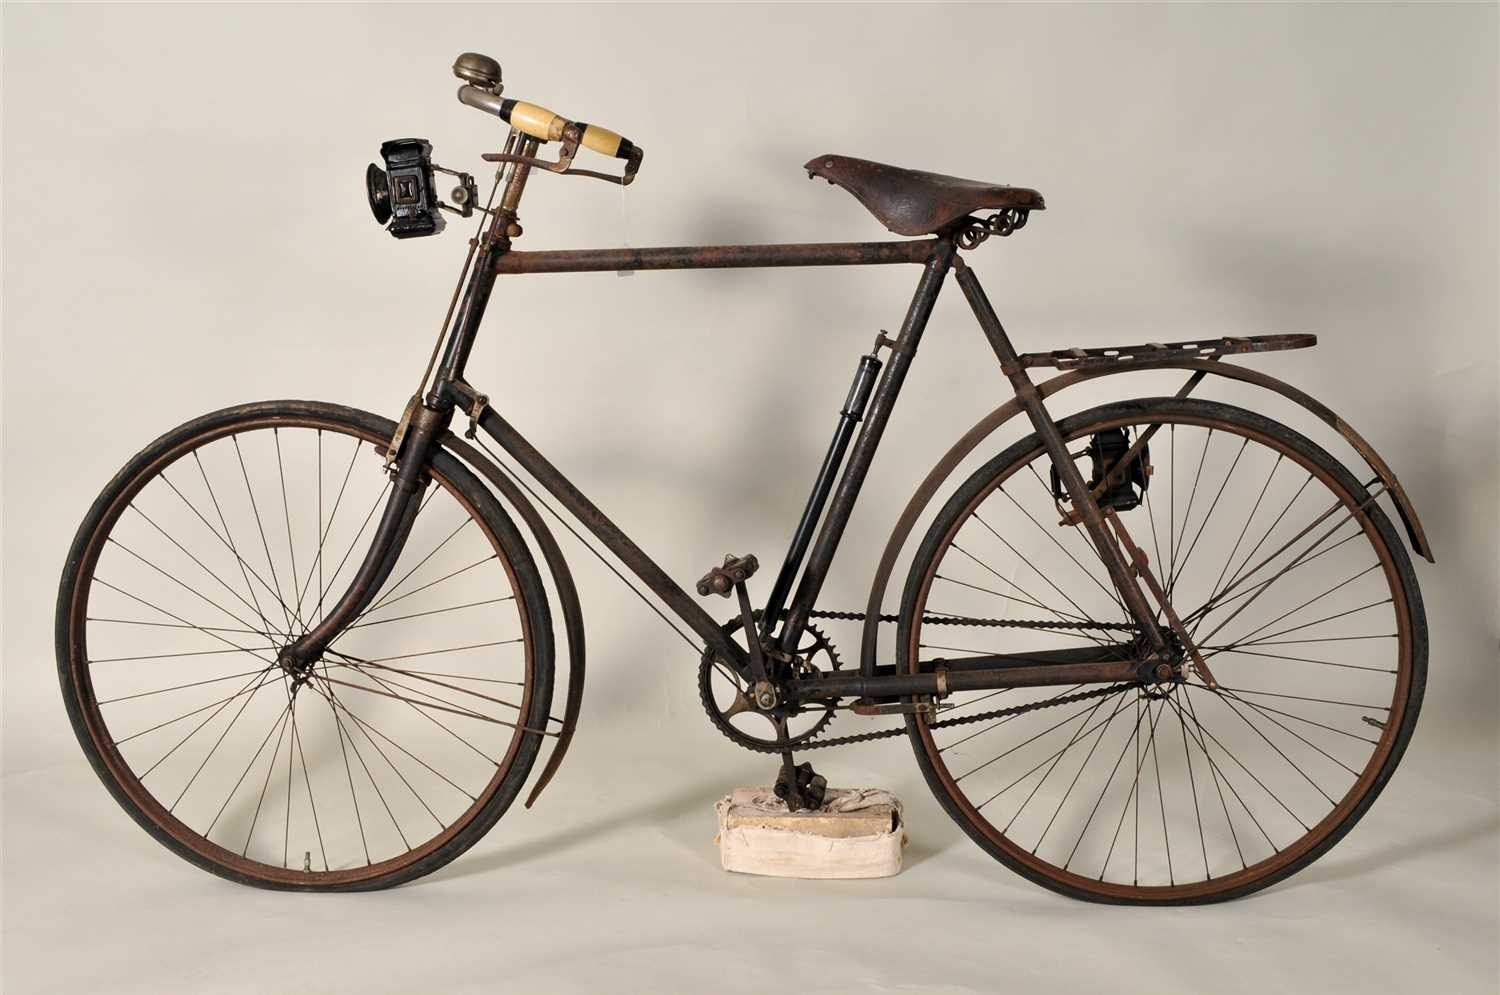 250 - An early 20th century Quadrant bicycle